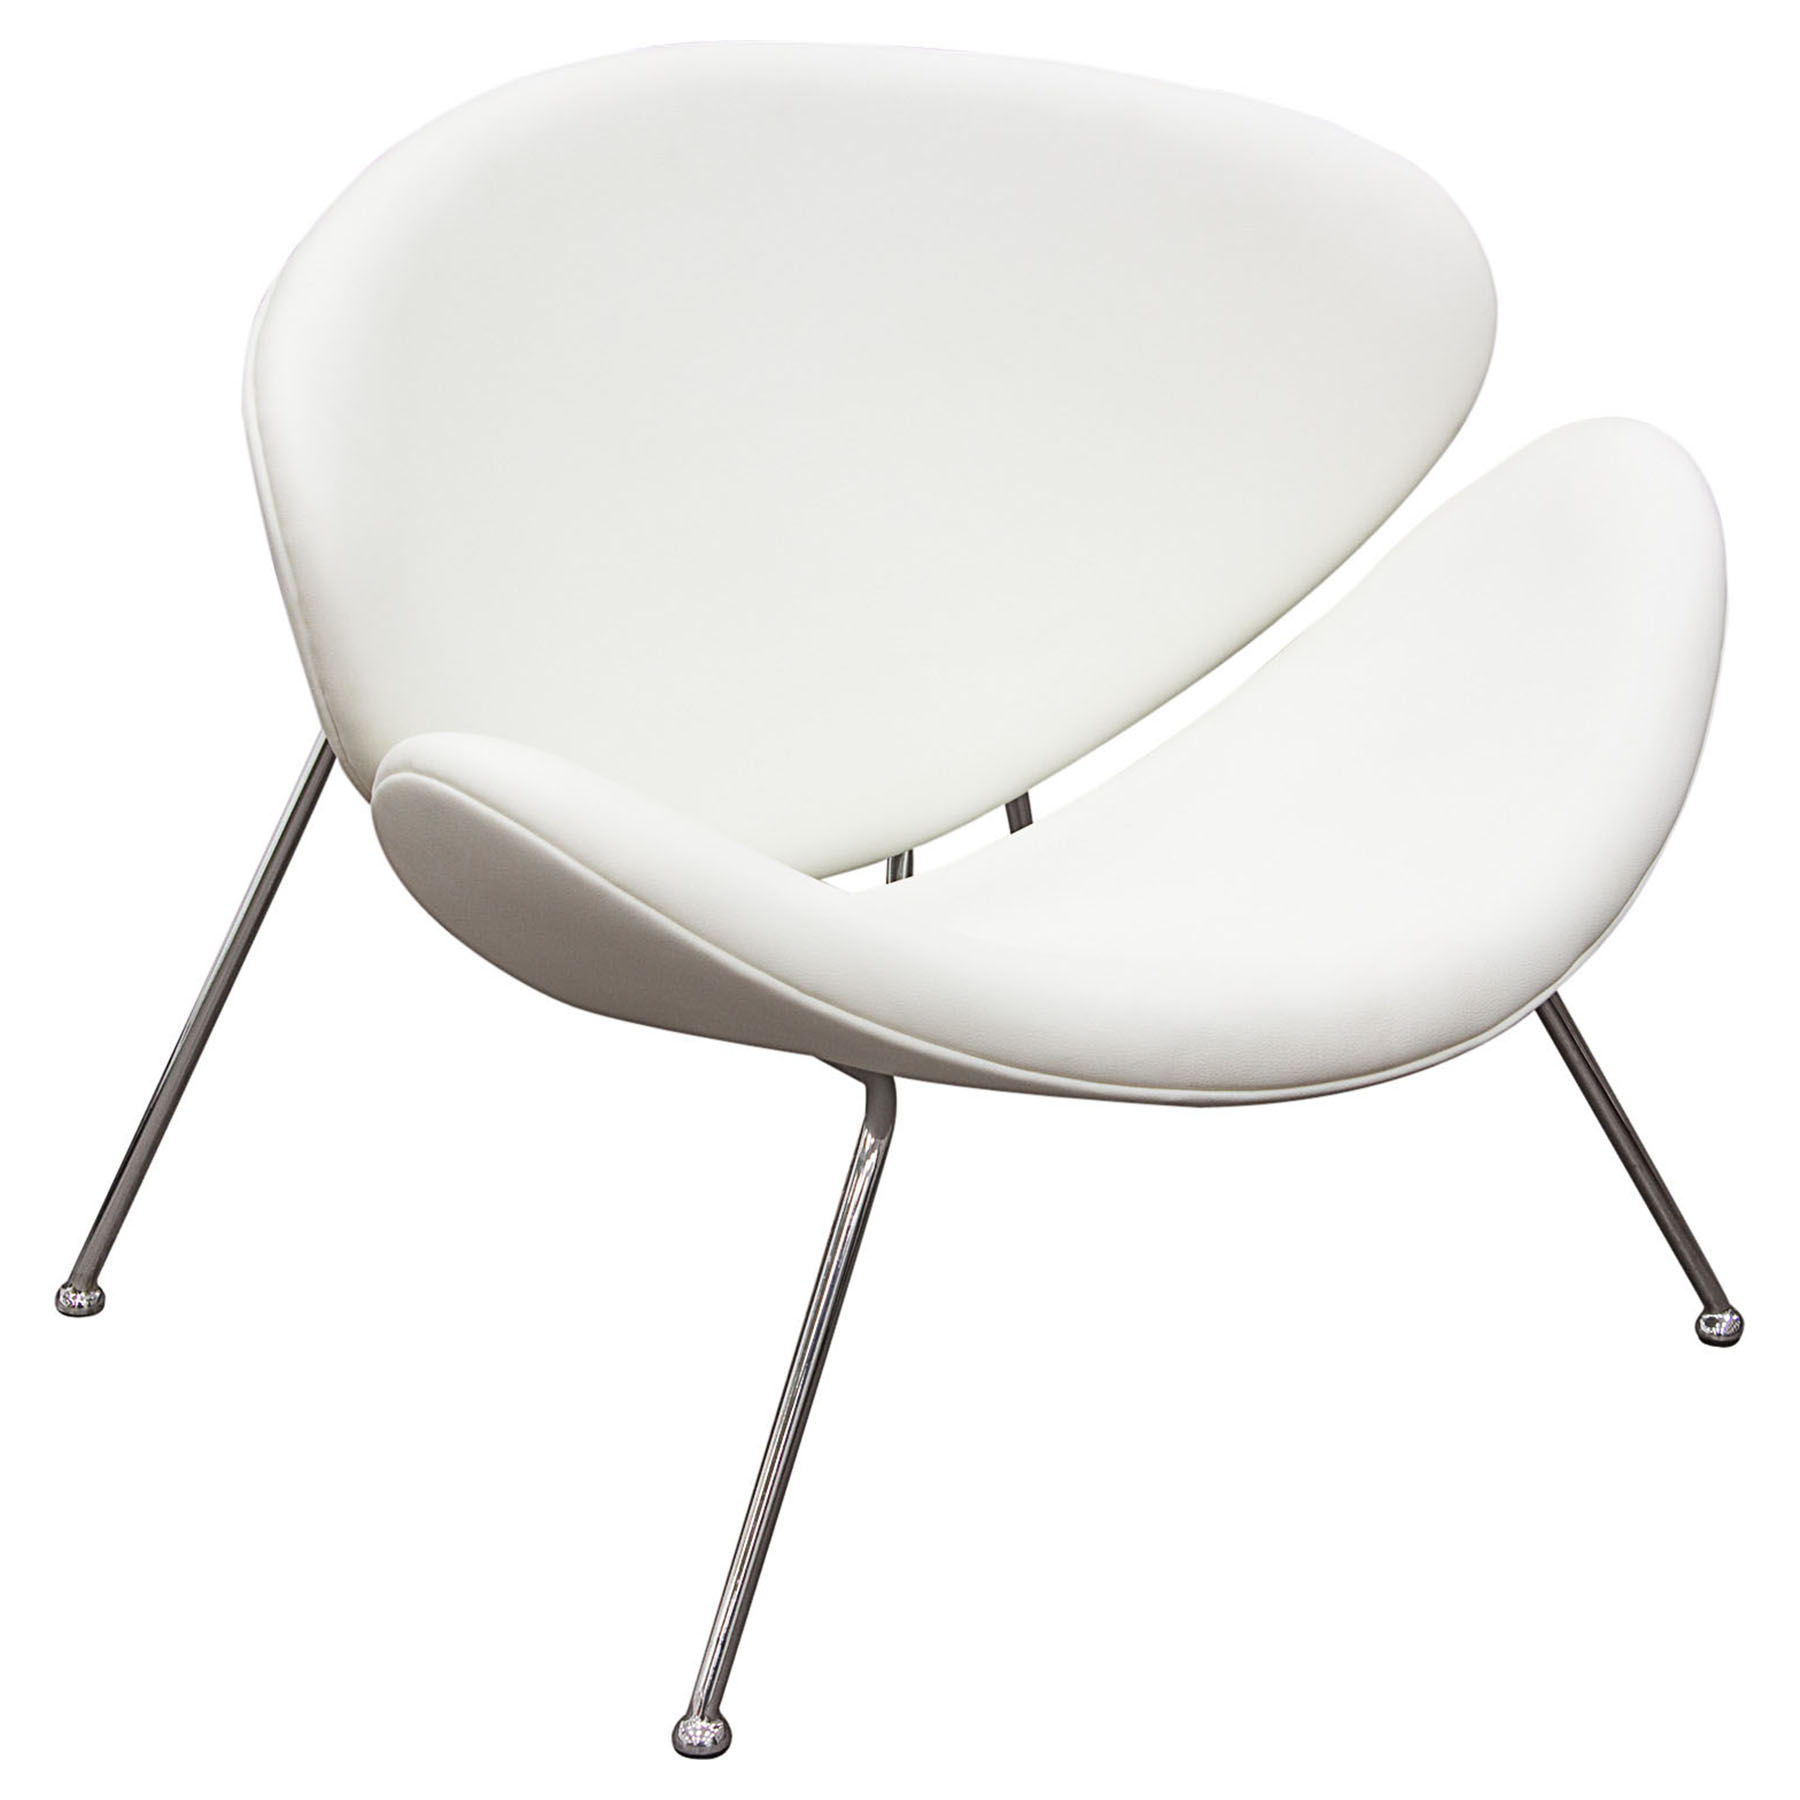 Roxy Accent Chair - Chrome, White (Set of 2)